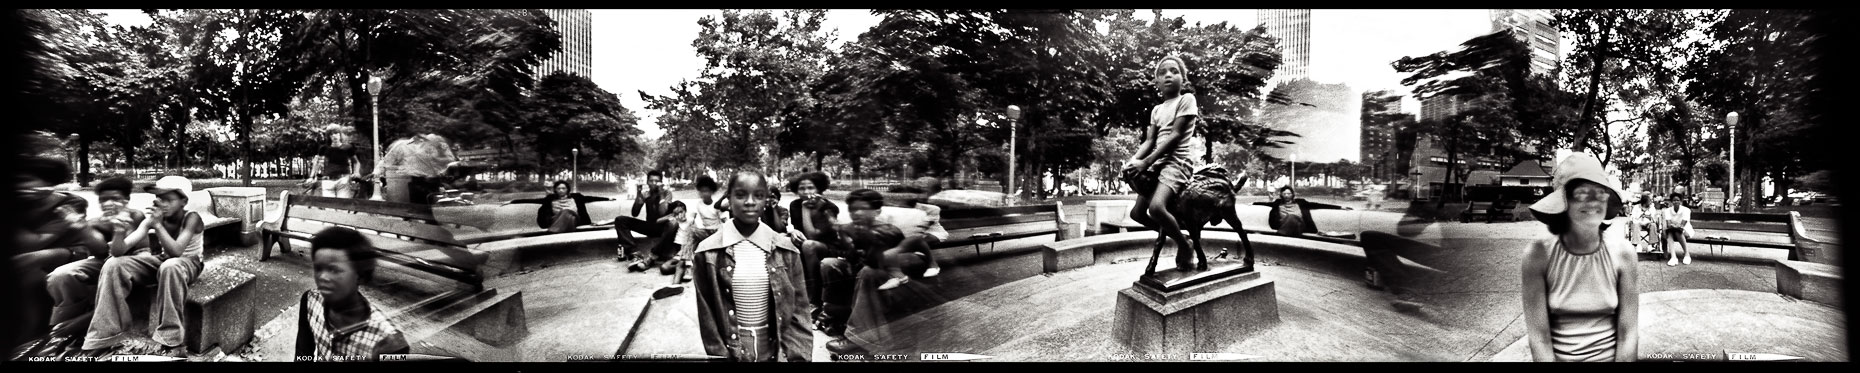 90_RittenhouseSquareAfternoon_1973